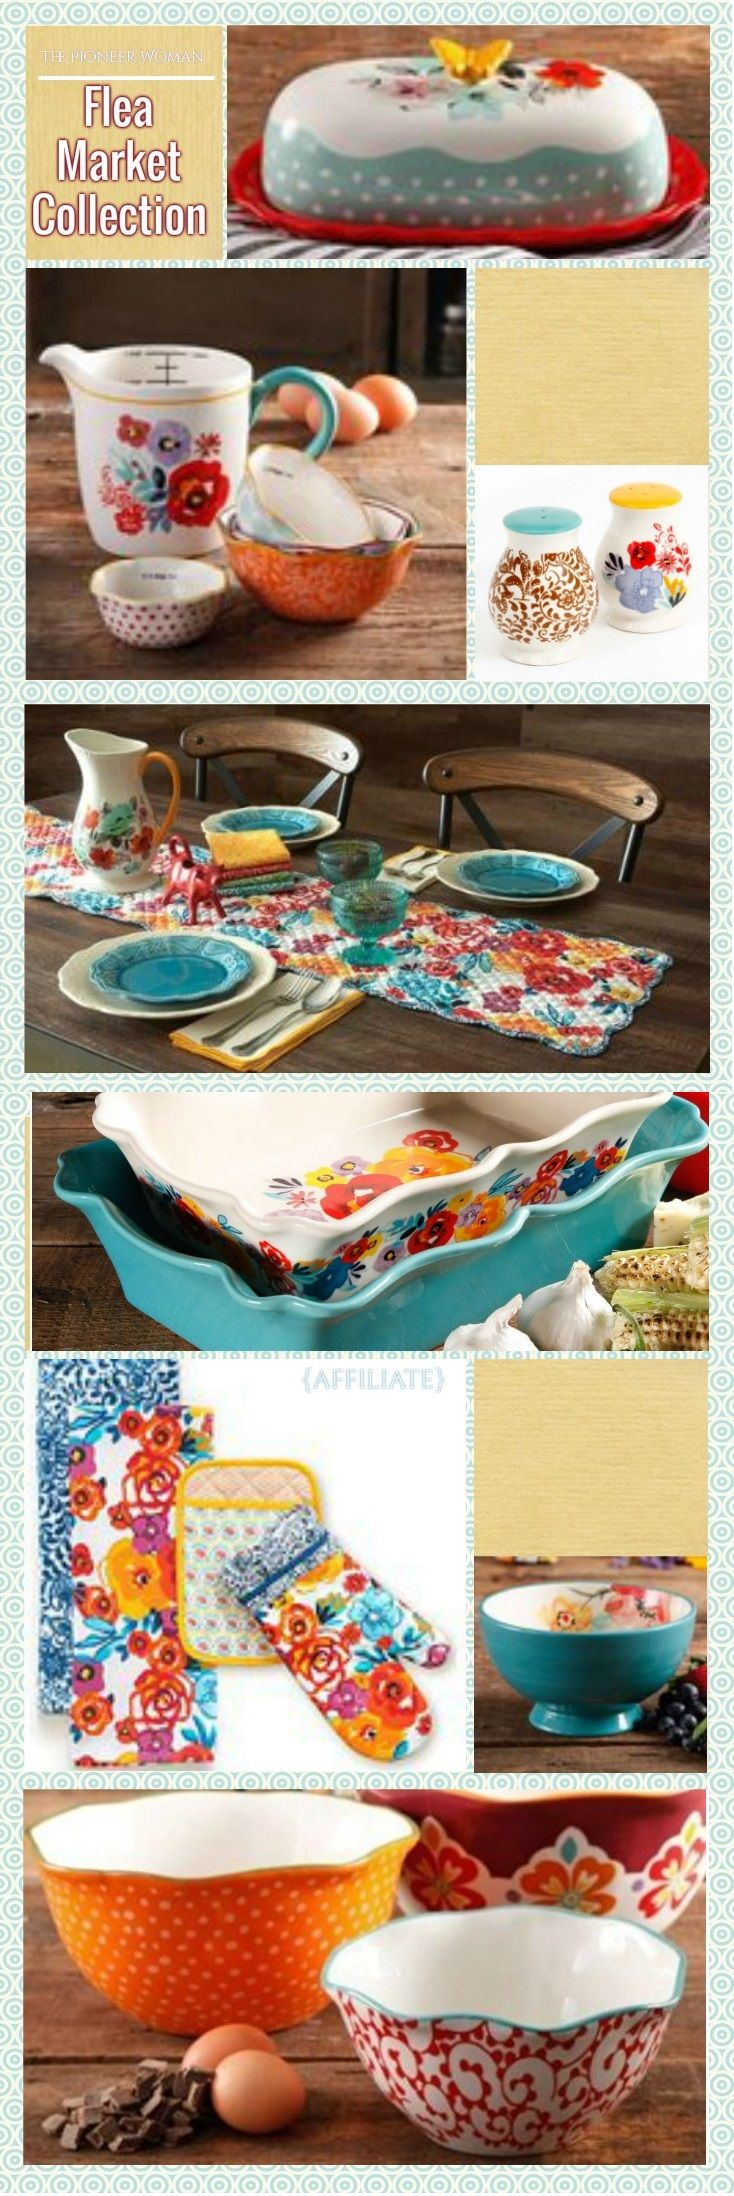 ls Vintage inspired and vibrant in color, spice up your home with the Pioneer Woman Flea Market collection!